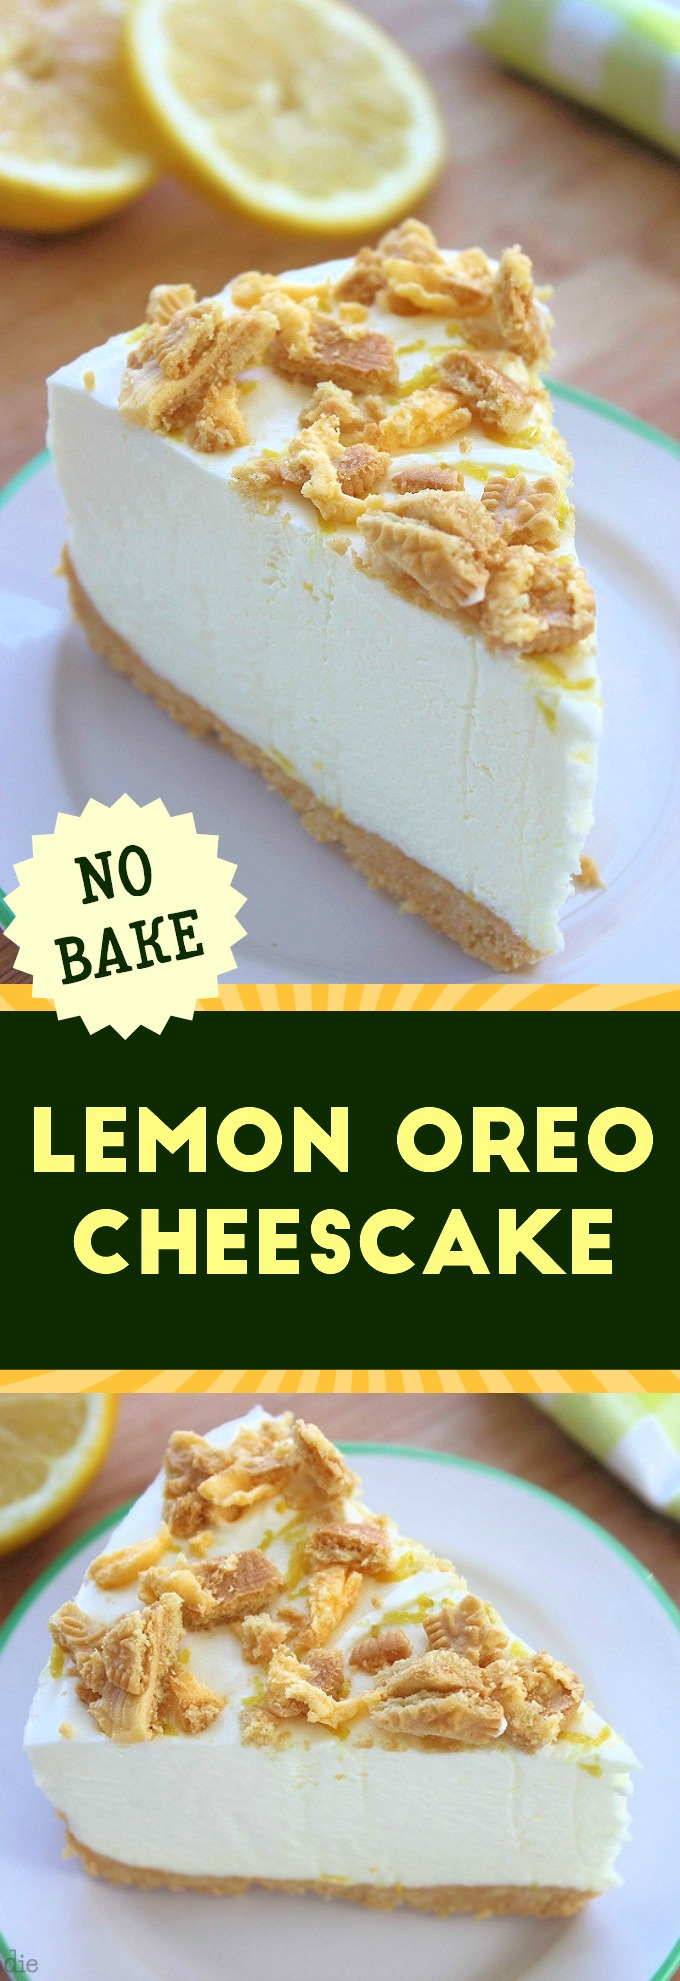 Lemon Oreo Cheesecake No bake